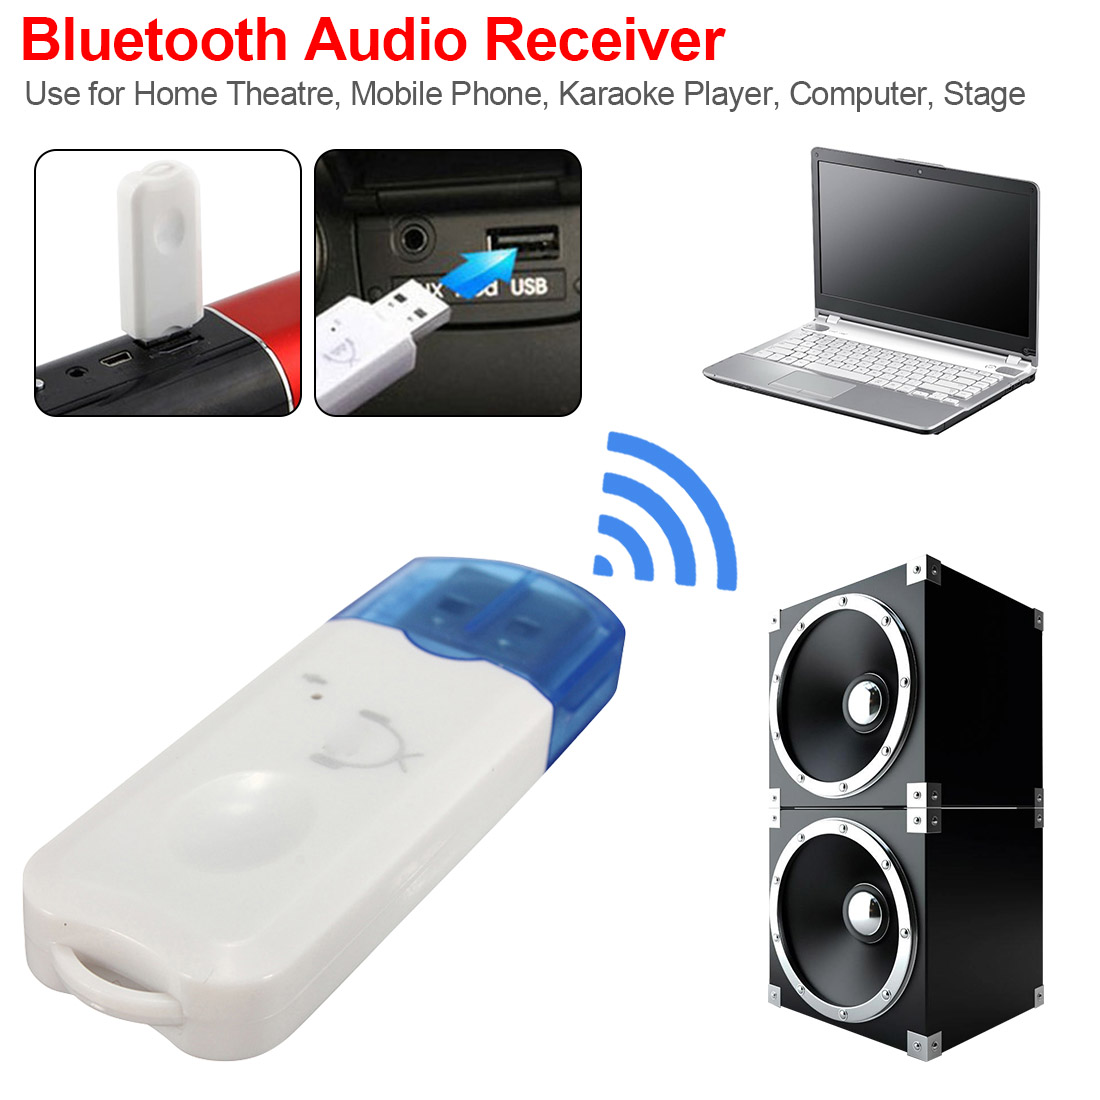 Bluetooth V2.1 Adapter USB Dongle For Computer PC Wireless Mouse Bluetooth Speaker 2.1 Music Receiver USB Bluetooth Adapter